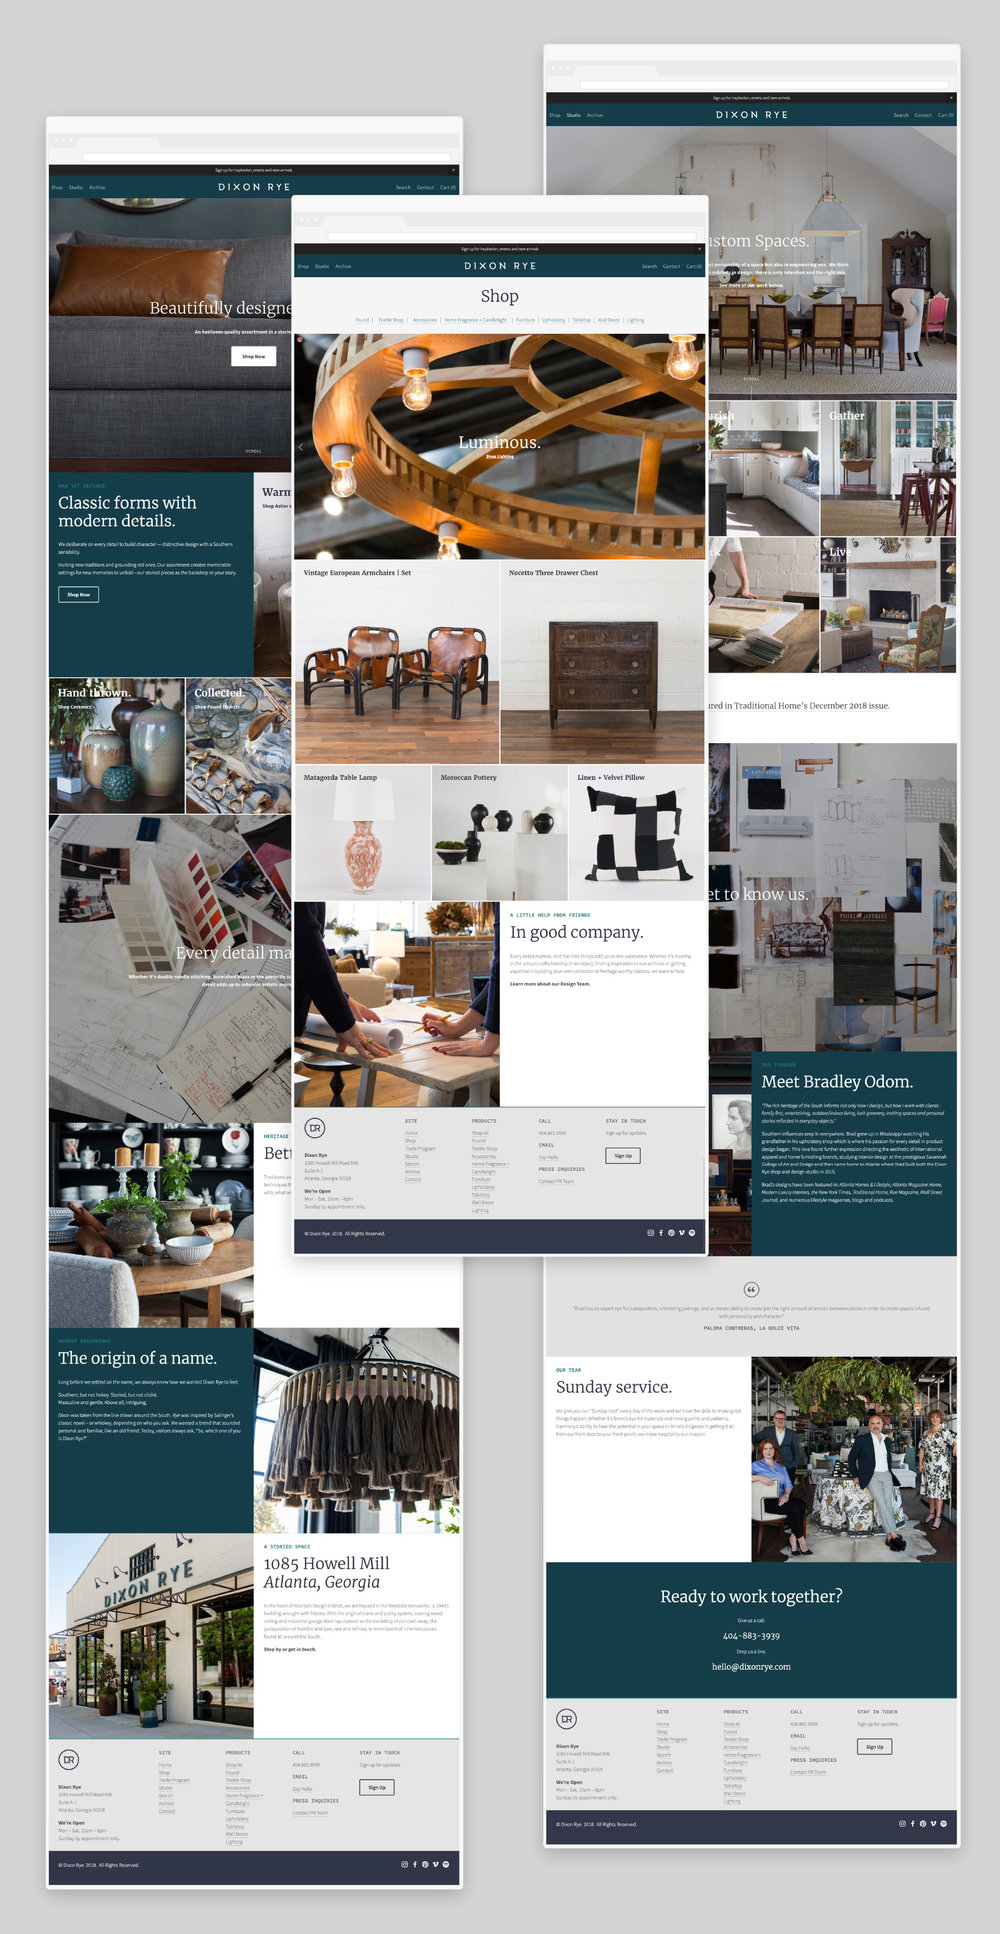 DR_ecomm-project_1-04-2.jpg